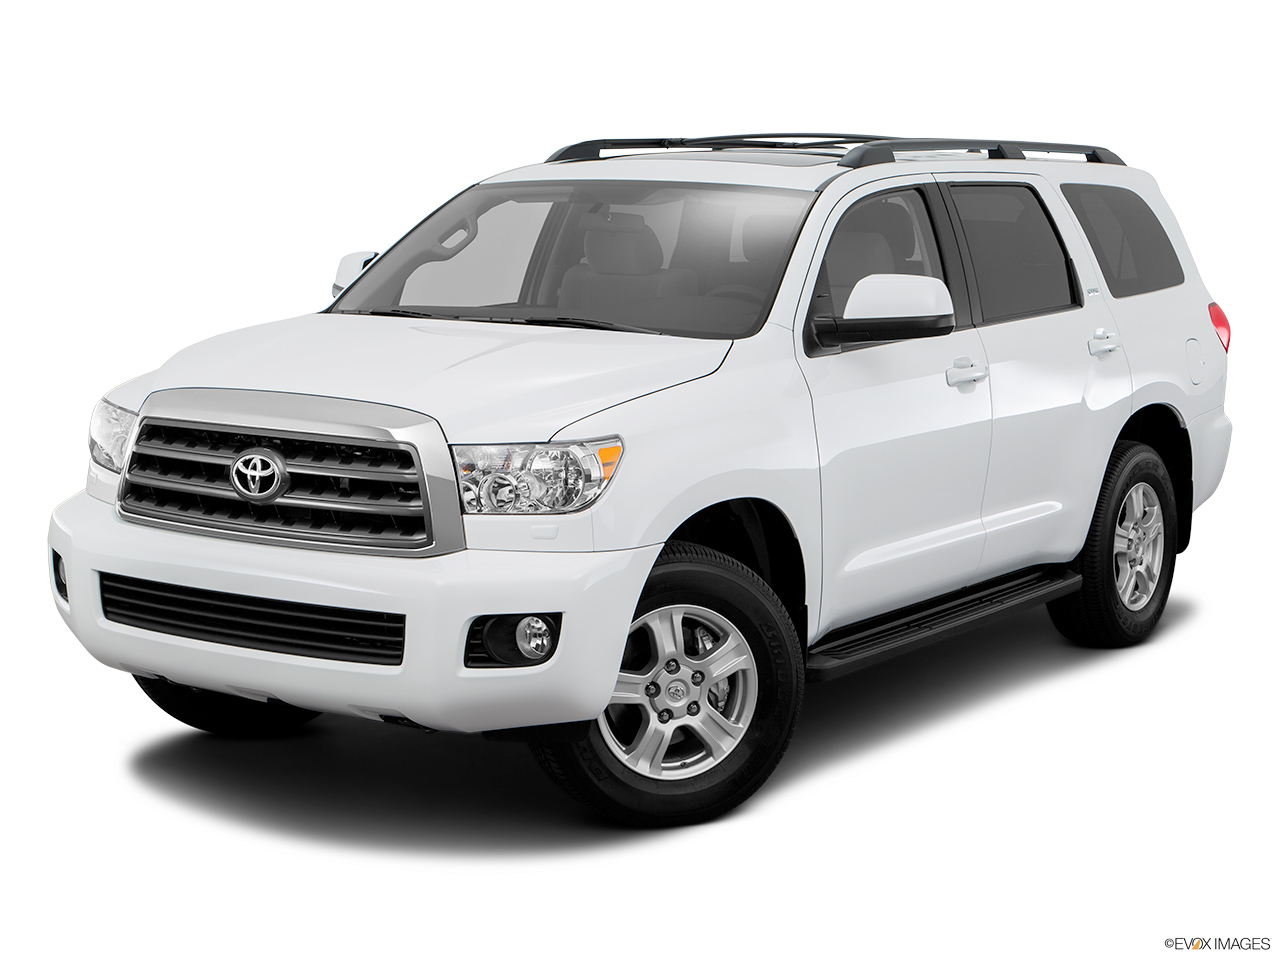 toyota sequoia price in oman new toyota sequoia photos. Black Bedroom Furniture Sets. Home Design Ideas